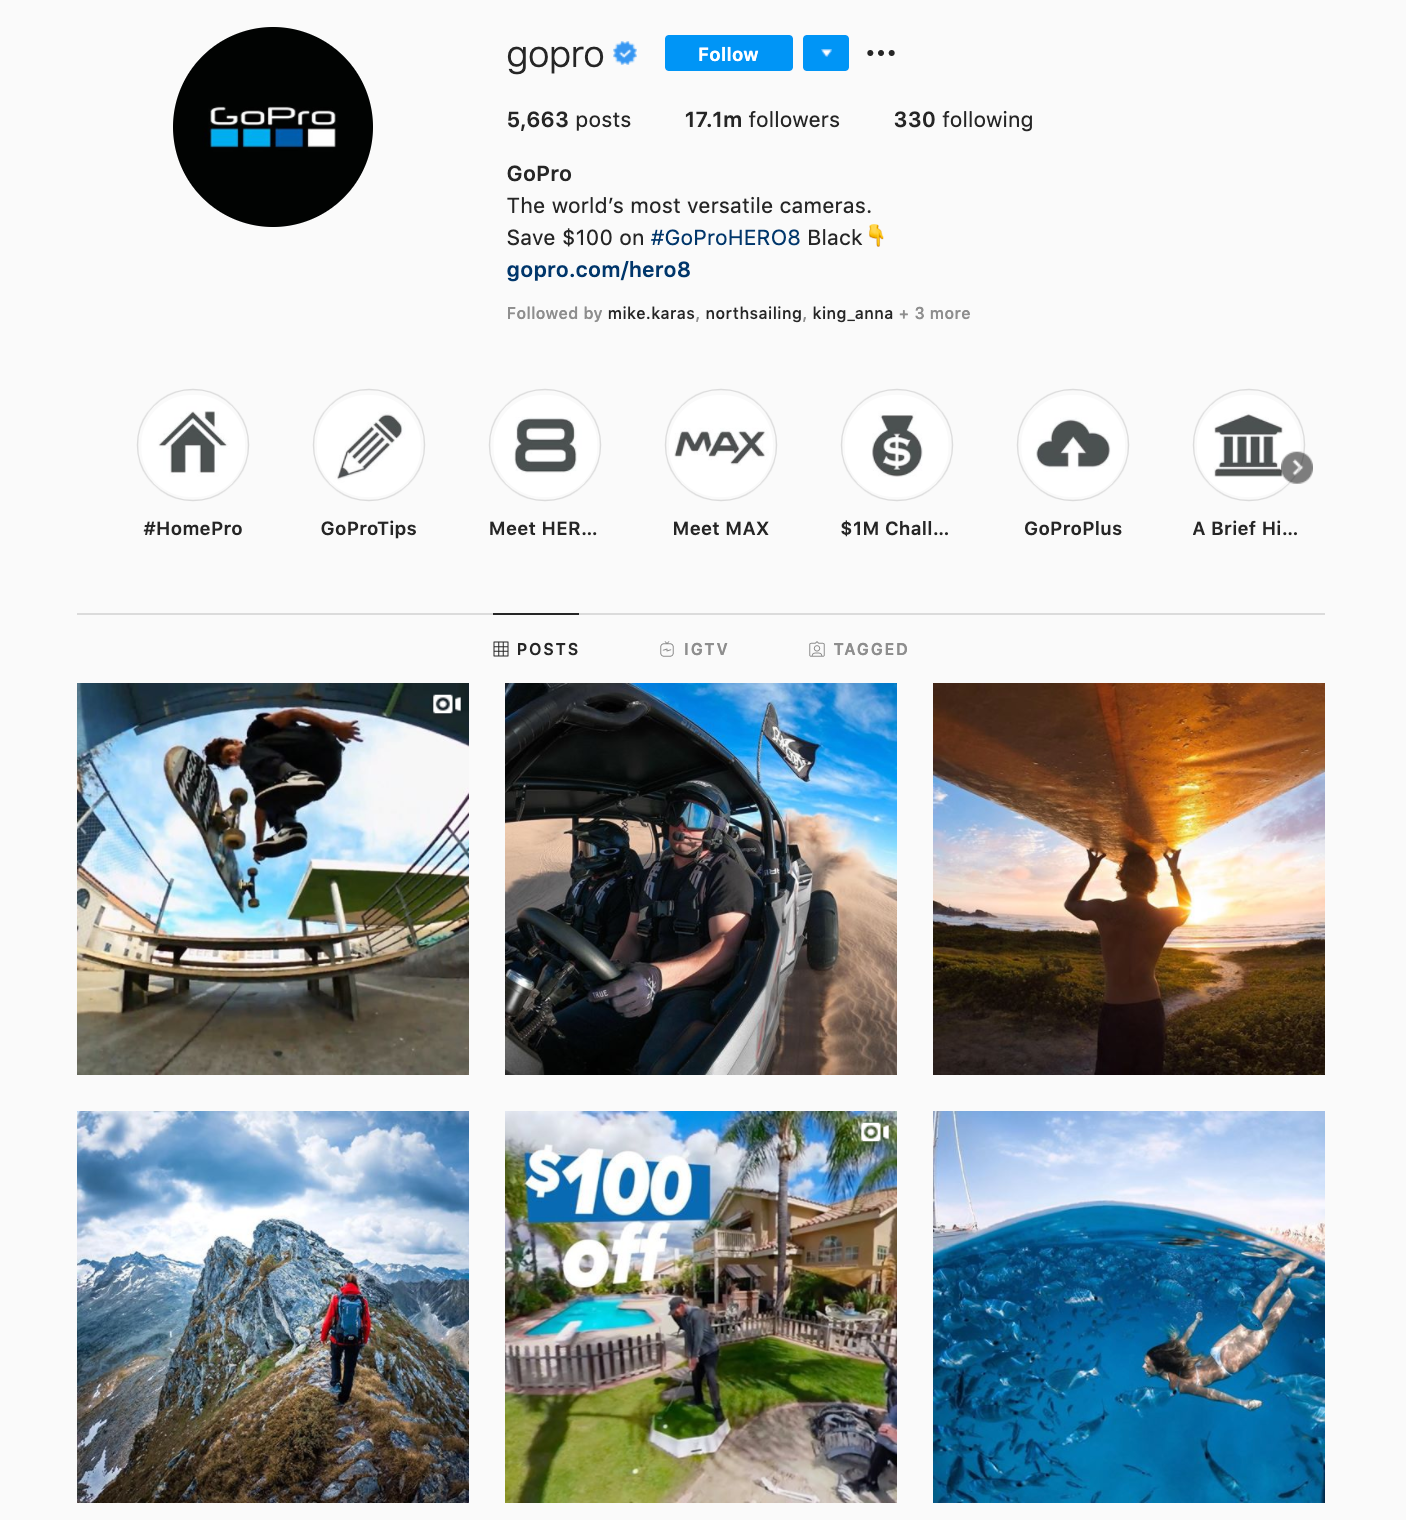 GoPro on Instagram